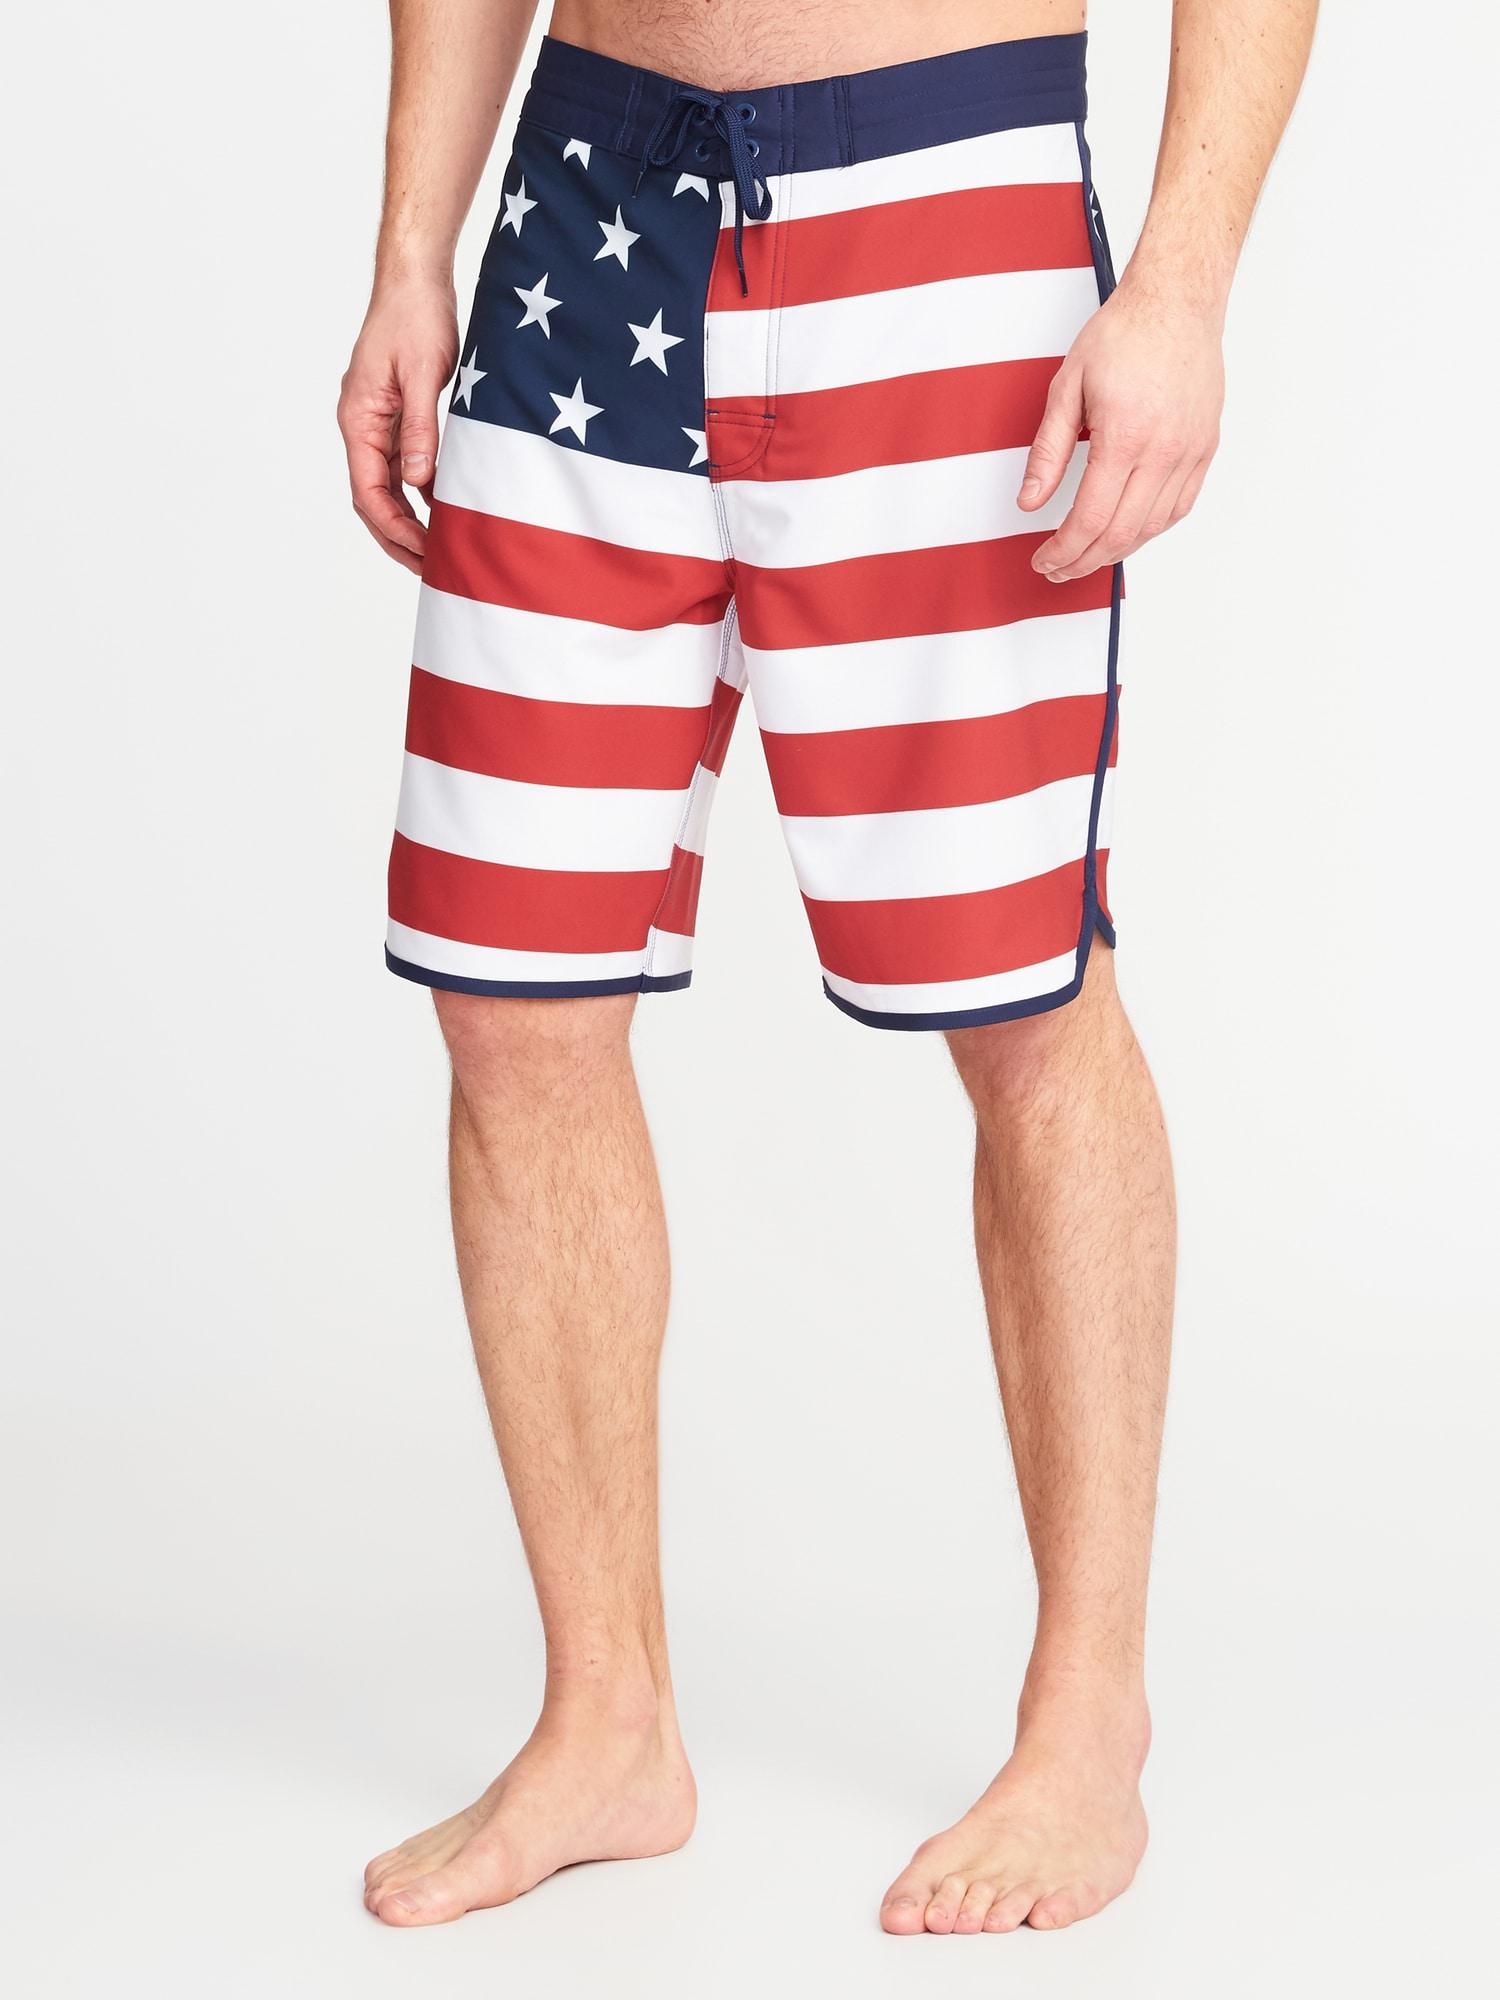 4b4e7e7a80 Old Navy Built-in Flex Printed Board Shorts in Red for Men - Lyst